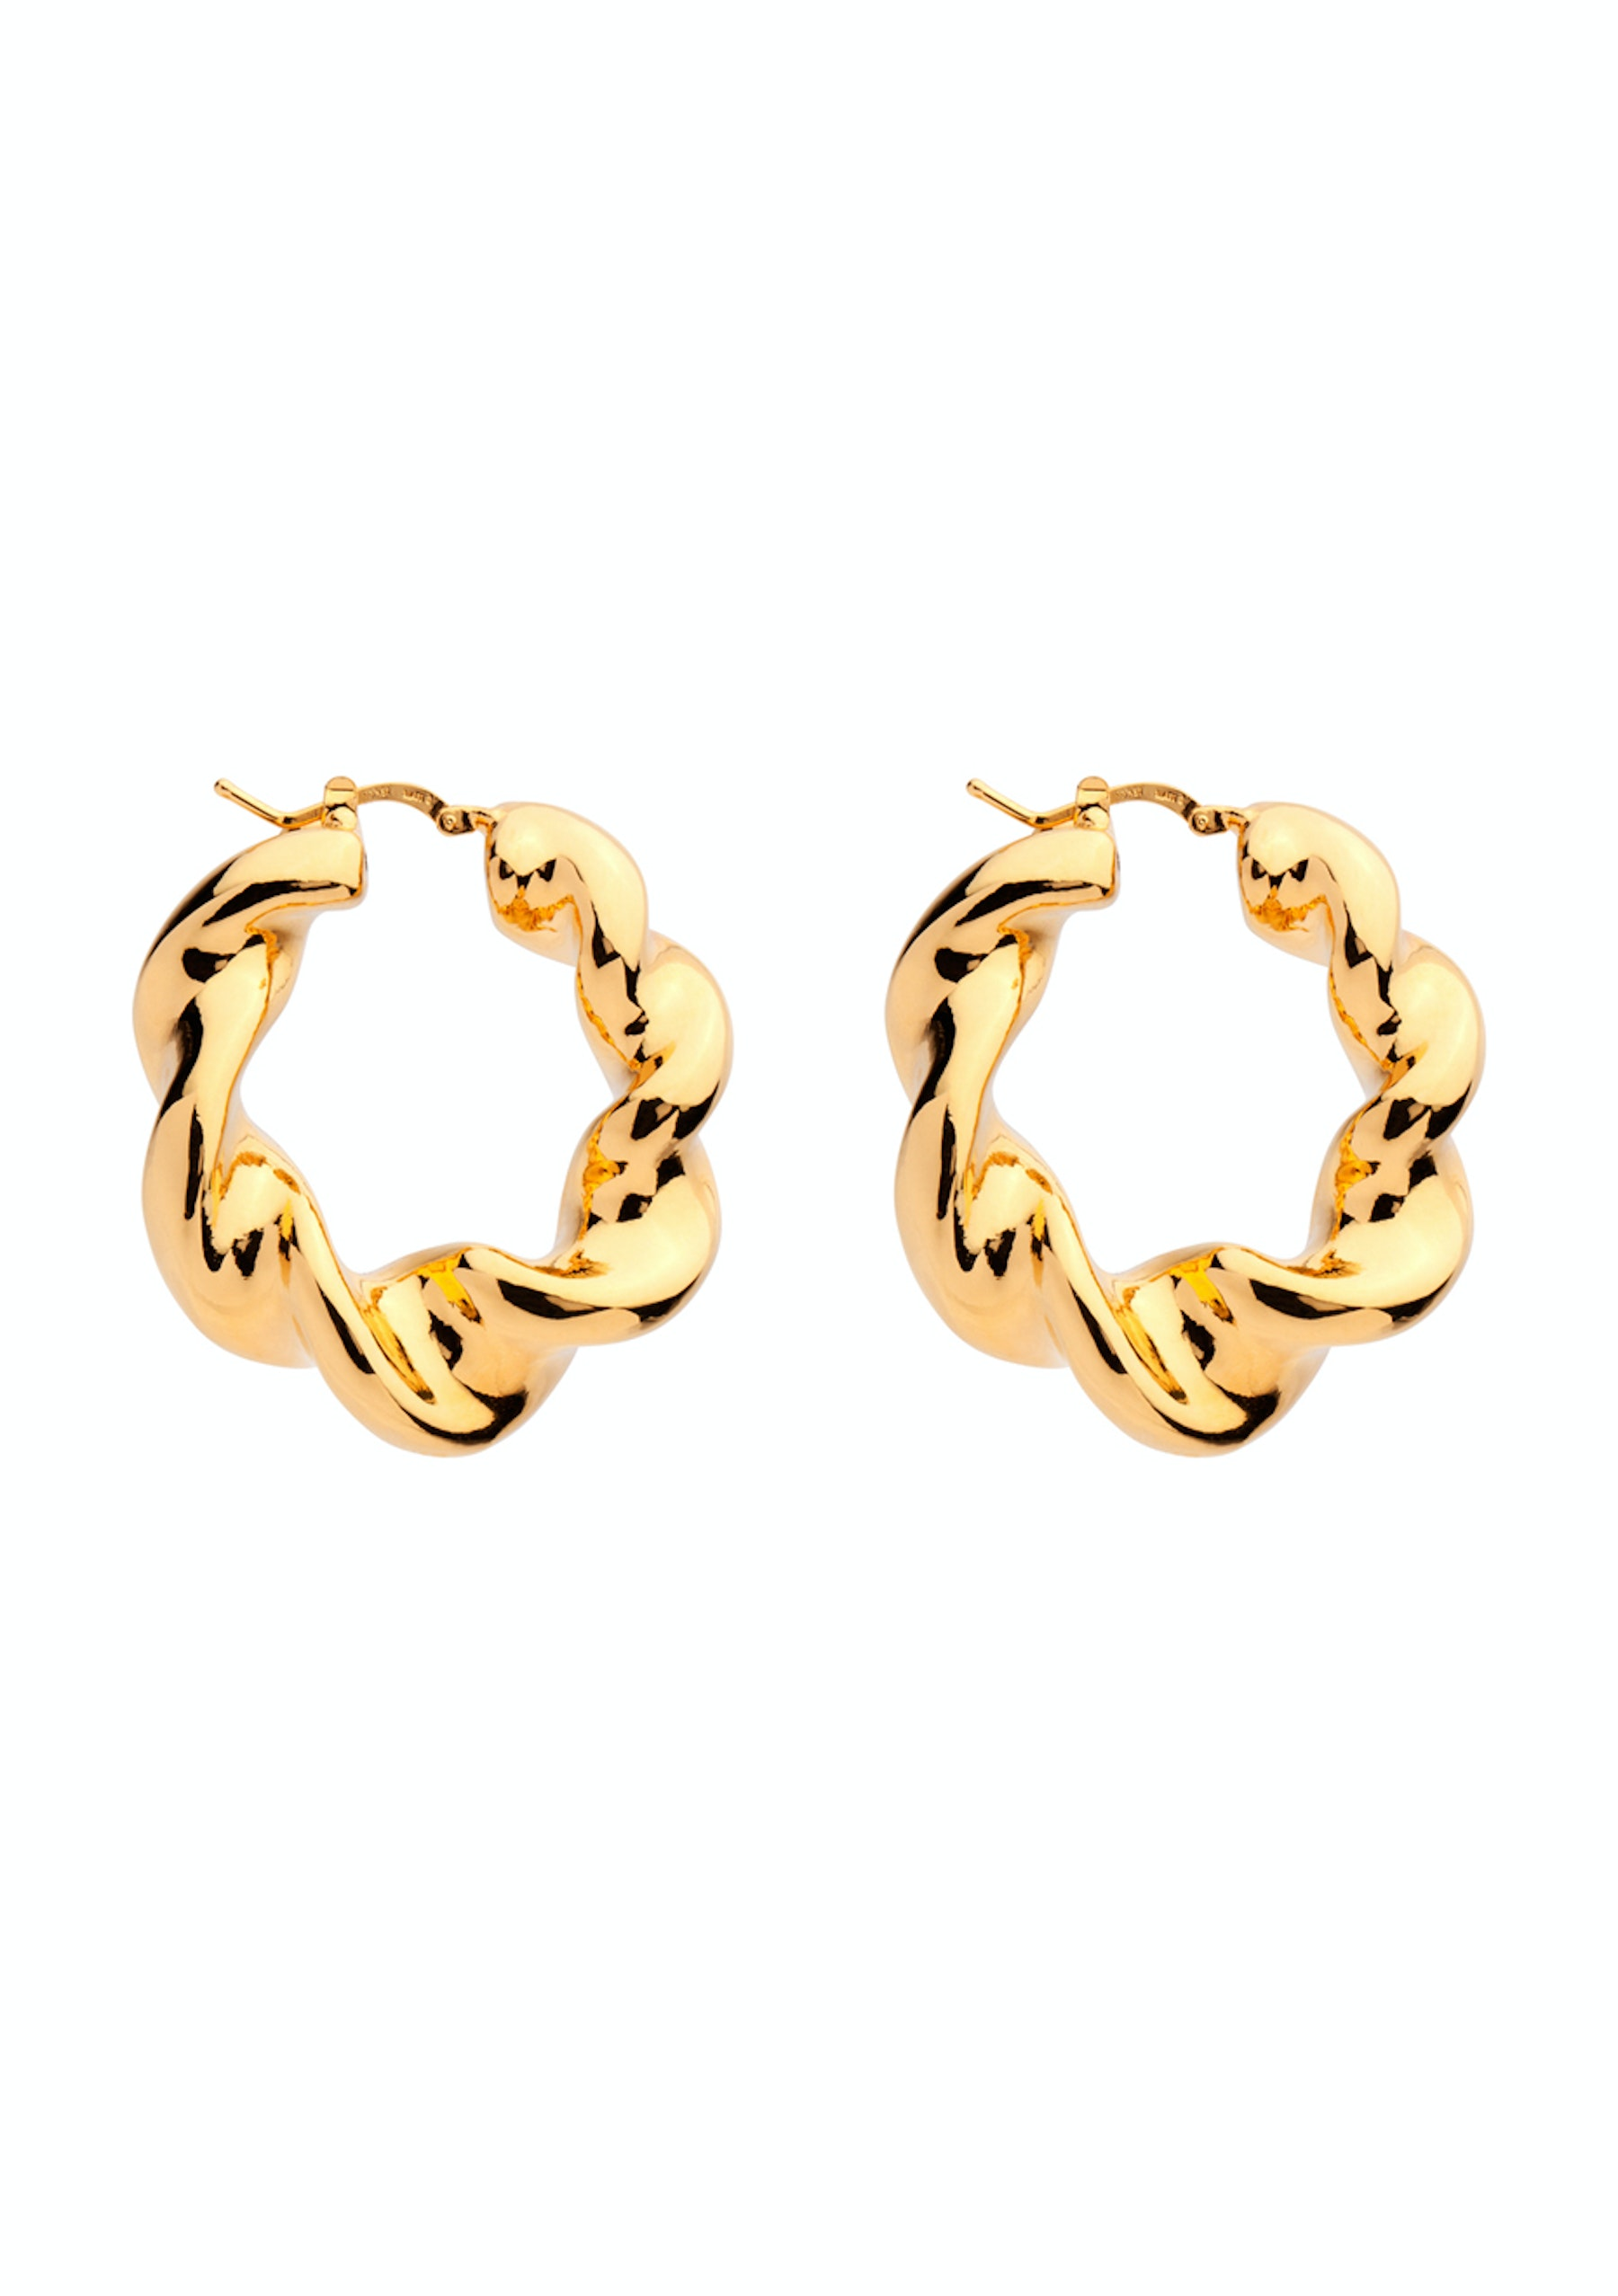 Amber Sceats Shani Gold Earrings Made In Italy Mega Designer